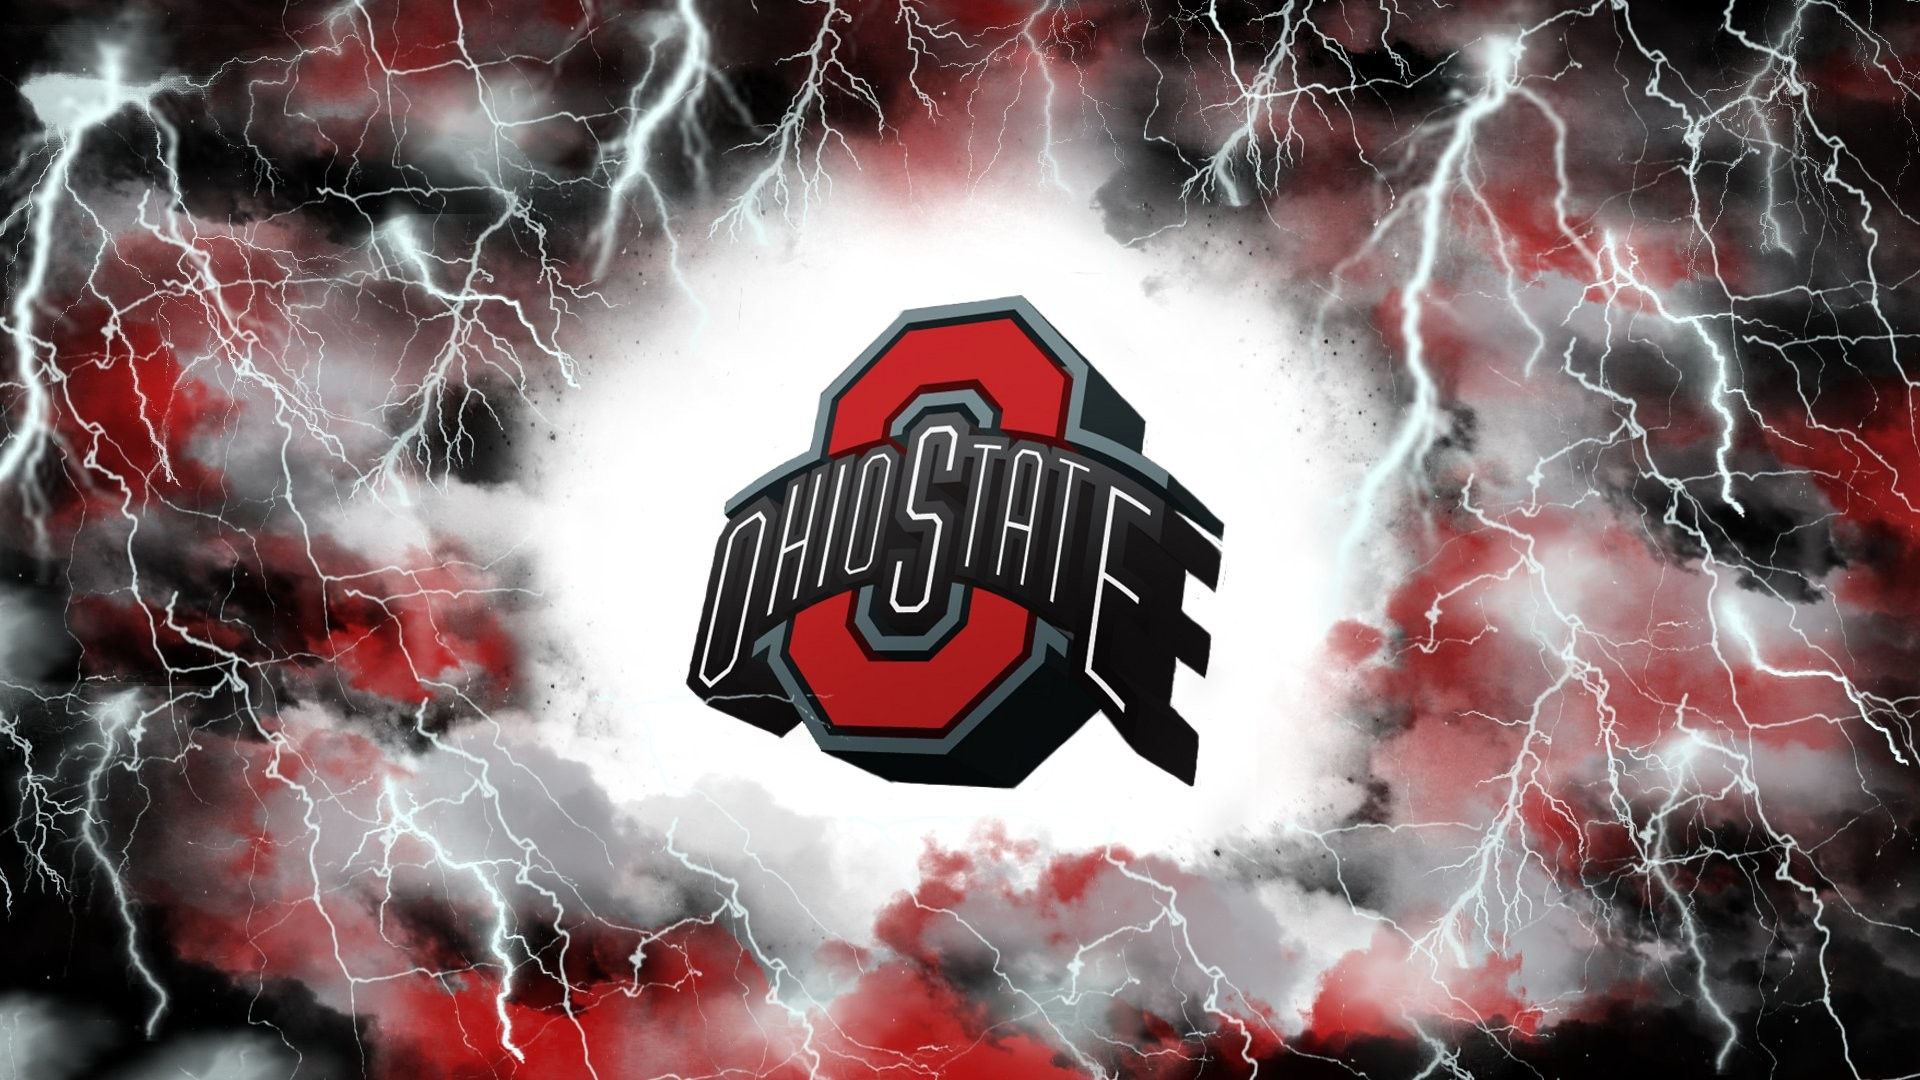 1920x1080 OHIO STATE BUCKEYES college football 21 wallpaper background